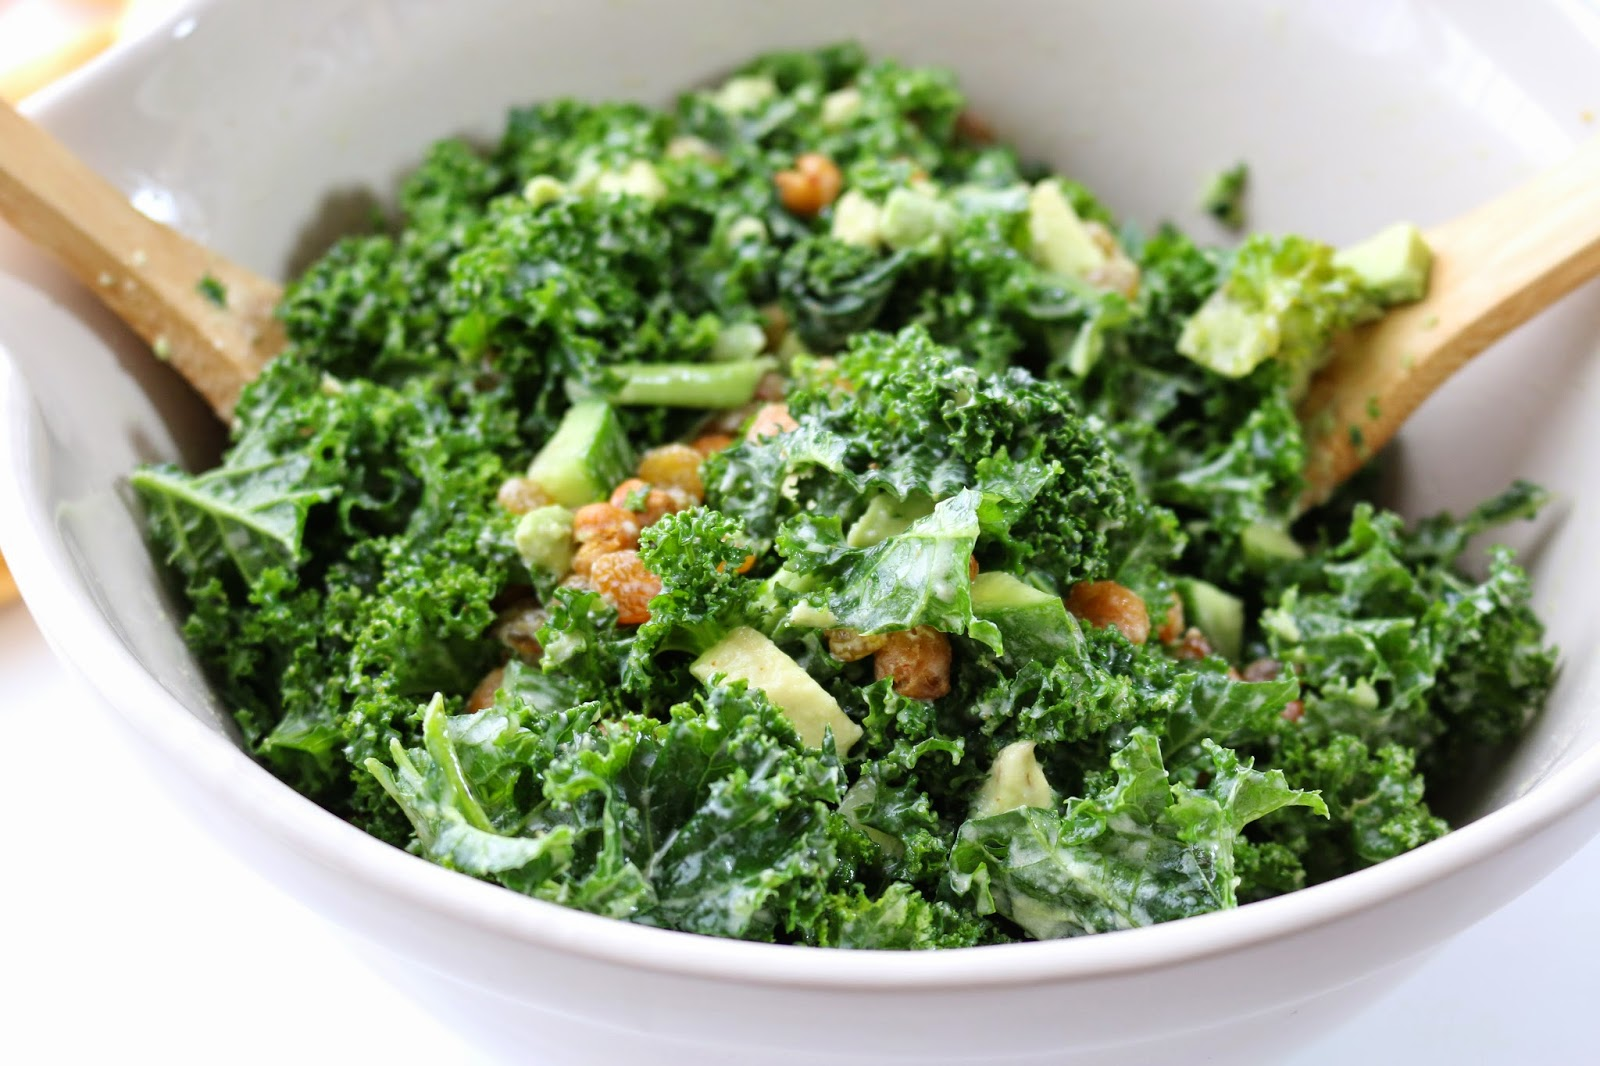 Golden Kale Tahini Salad: This salad combines silky kale greens with the creamy tahini dressing, spicy roasted garbanzo beans and sweet golden raisins